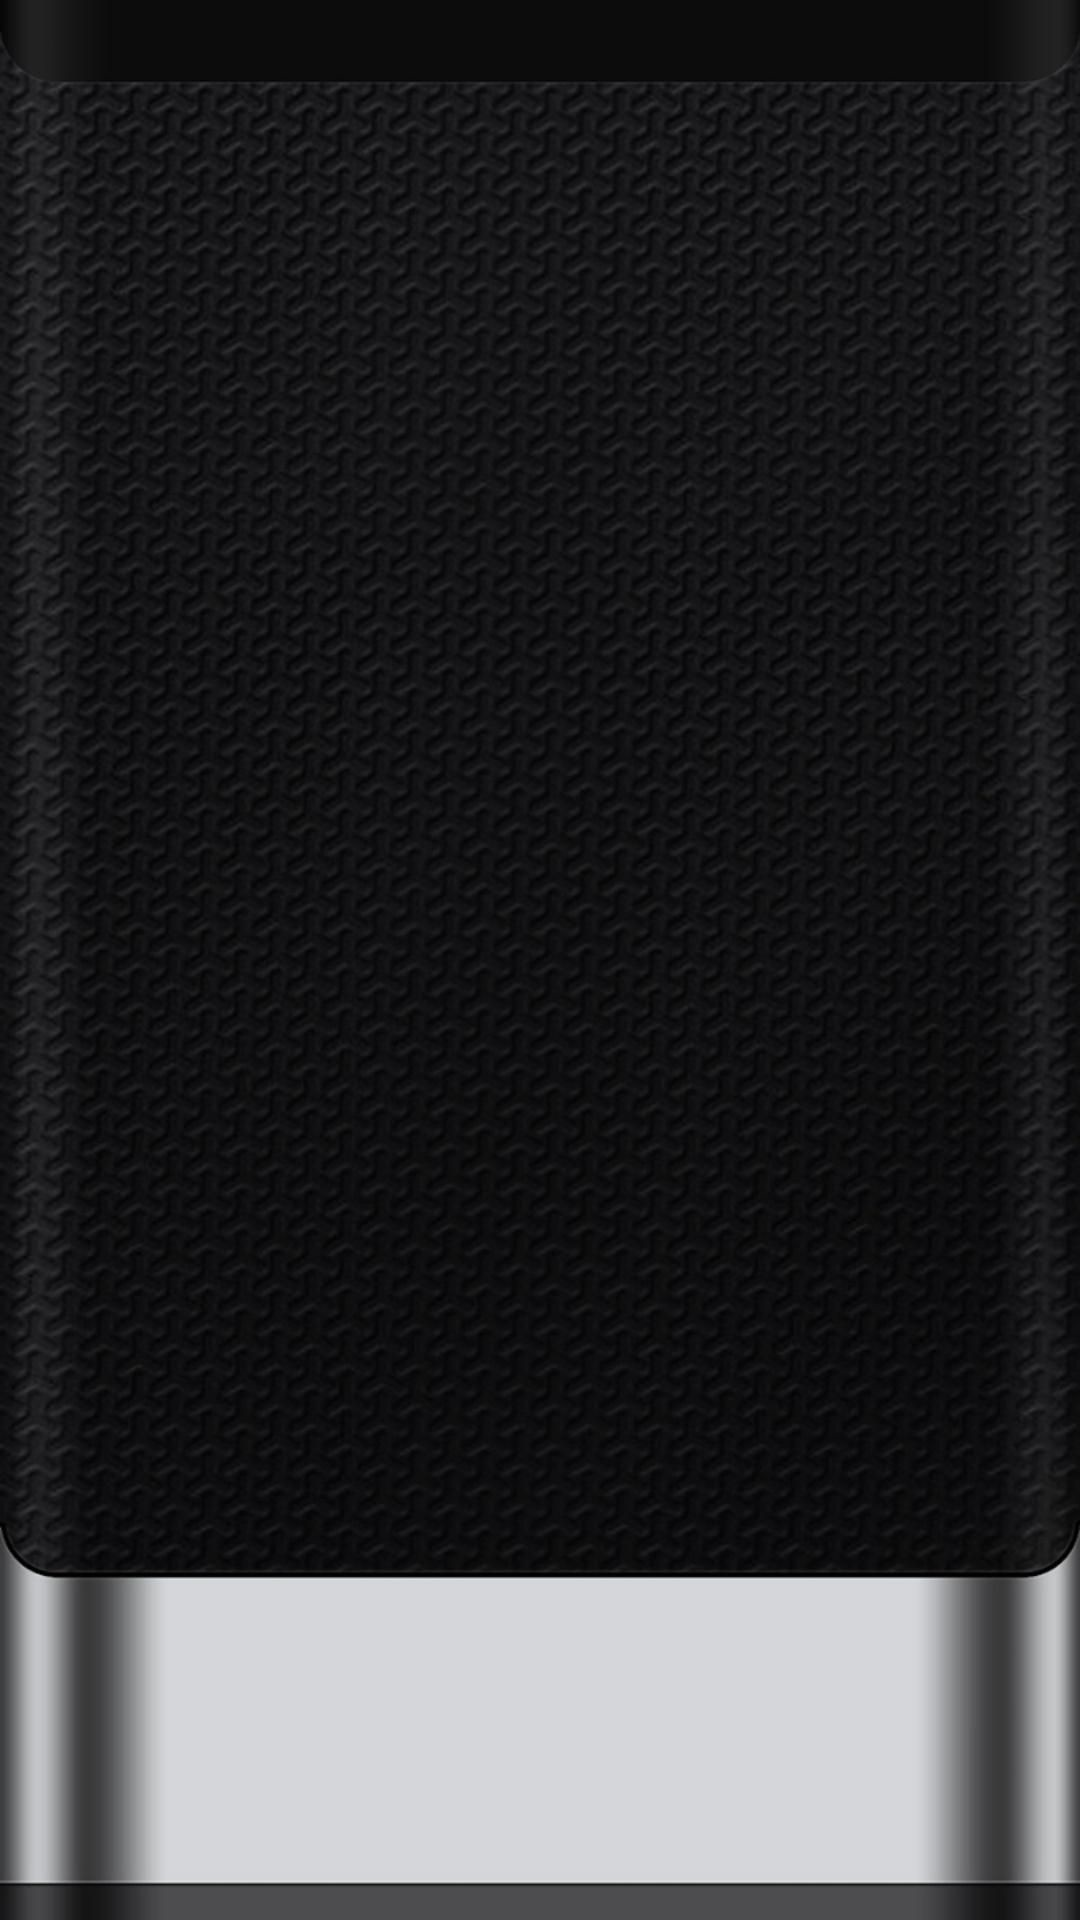 Black iphone 8 wallpaper